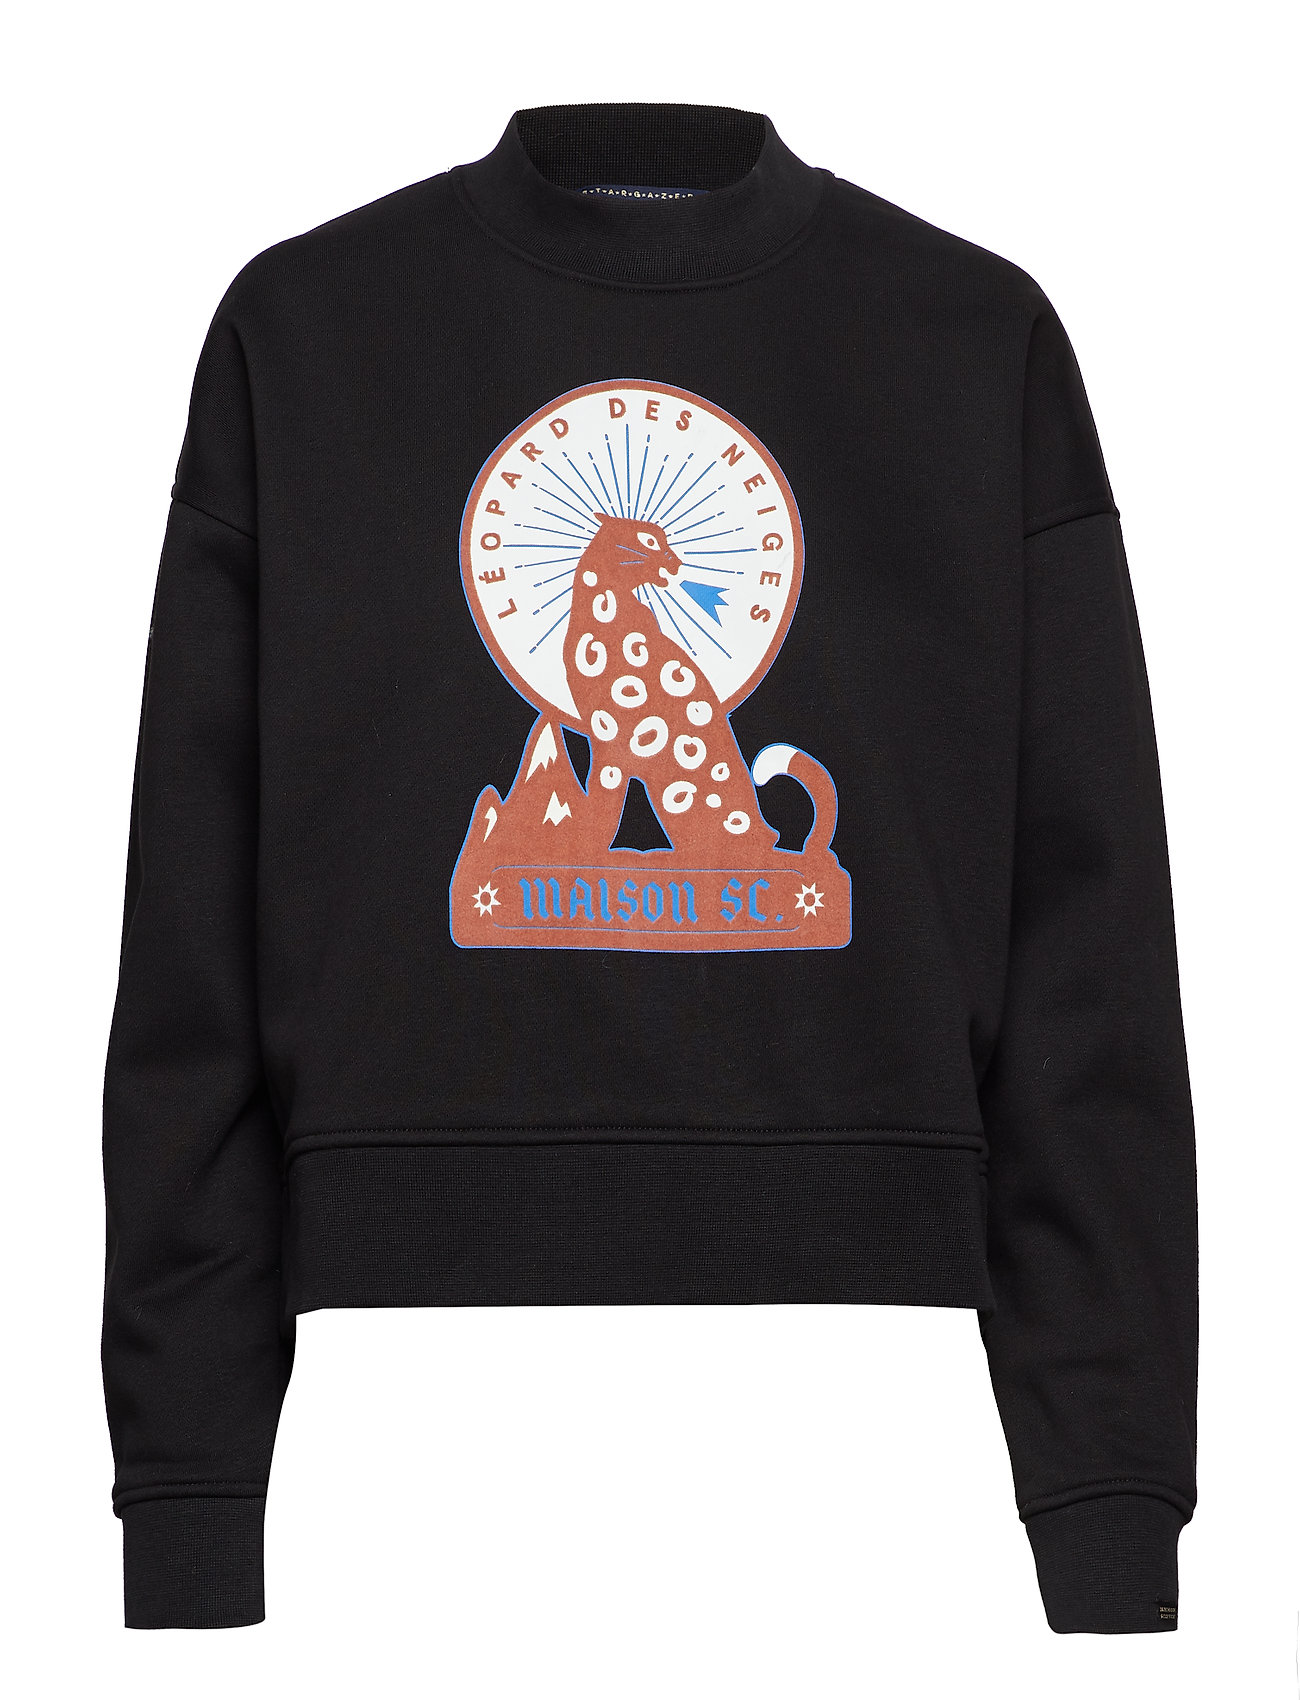 Scotch & Soda High neck boxy fit sweat with various artworks